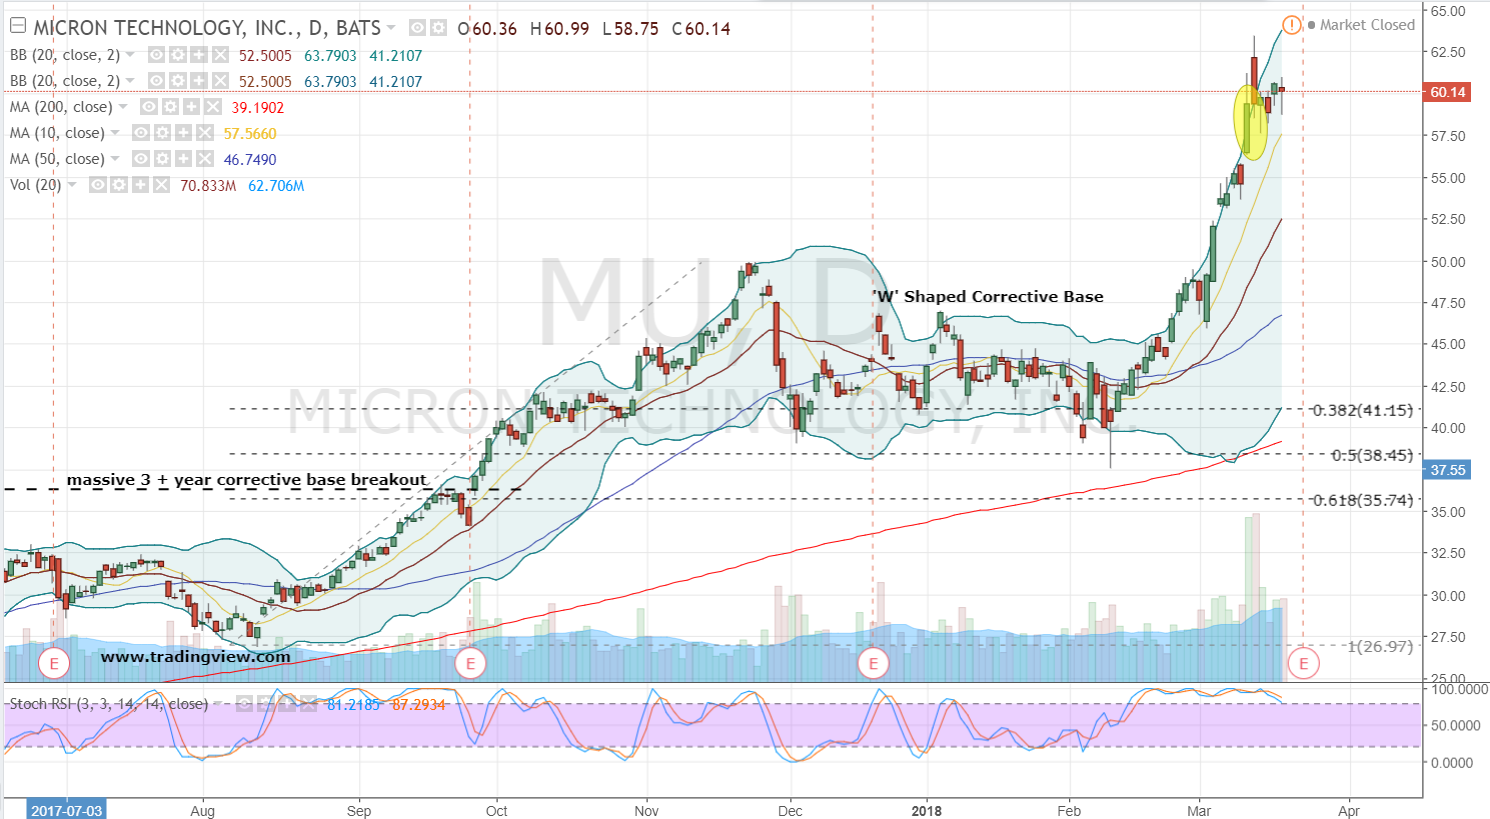 Credit Suisse raises its Micron target to 16% upside